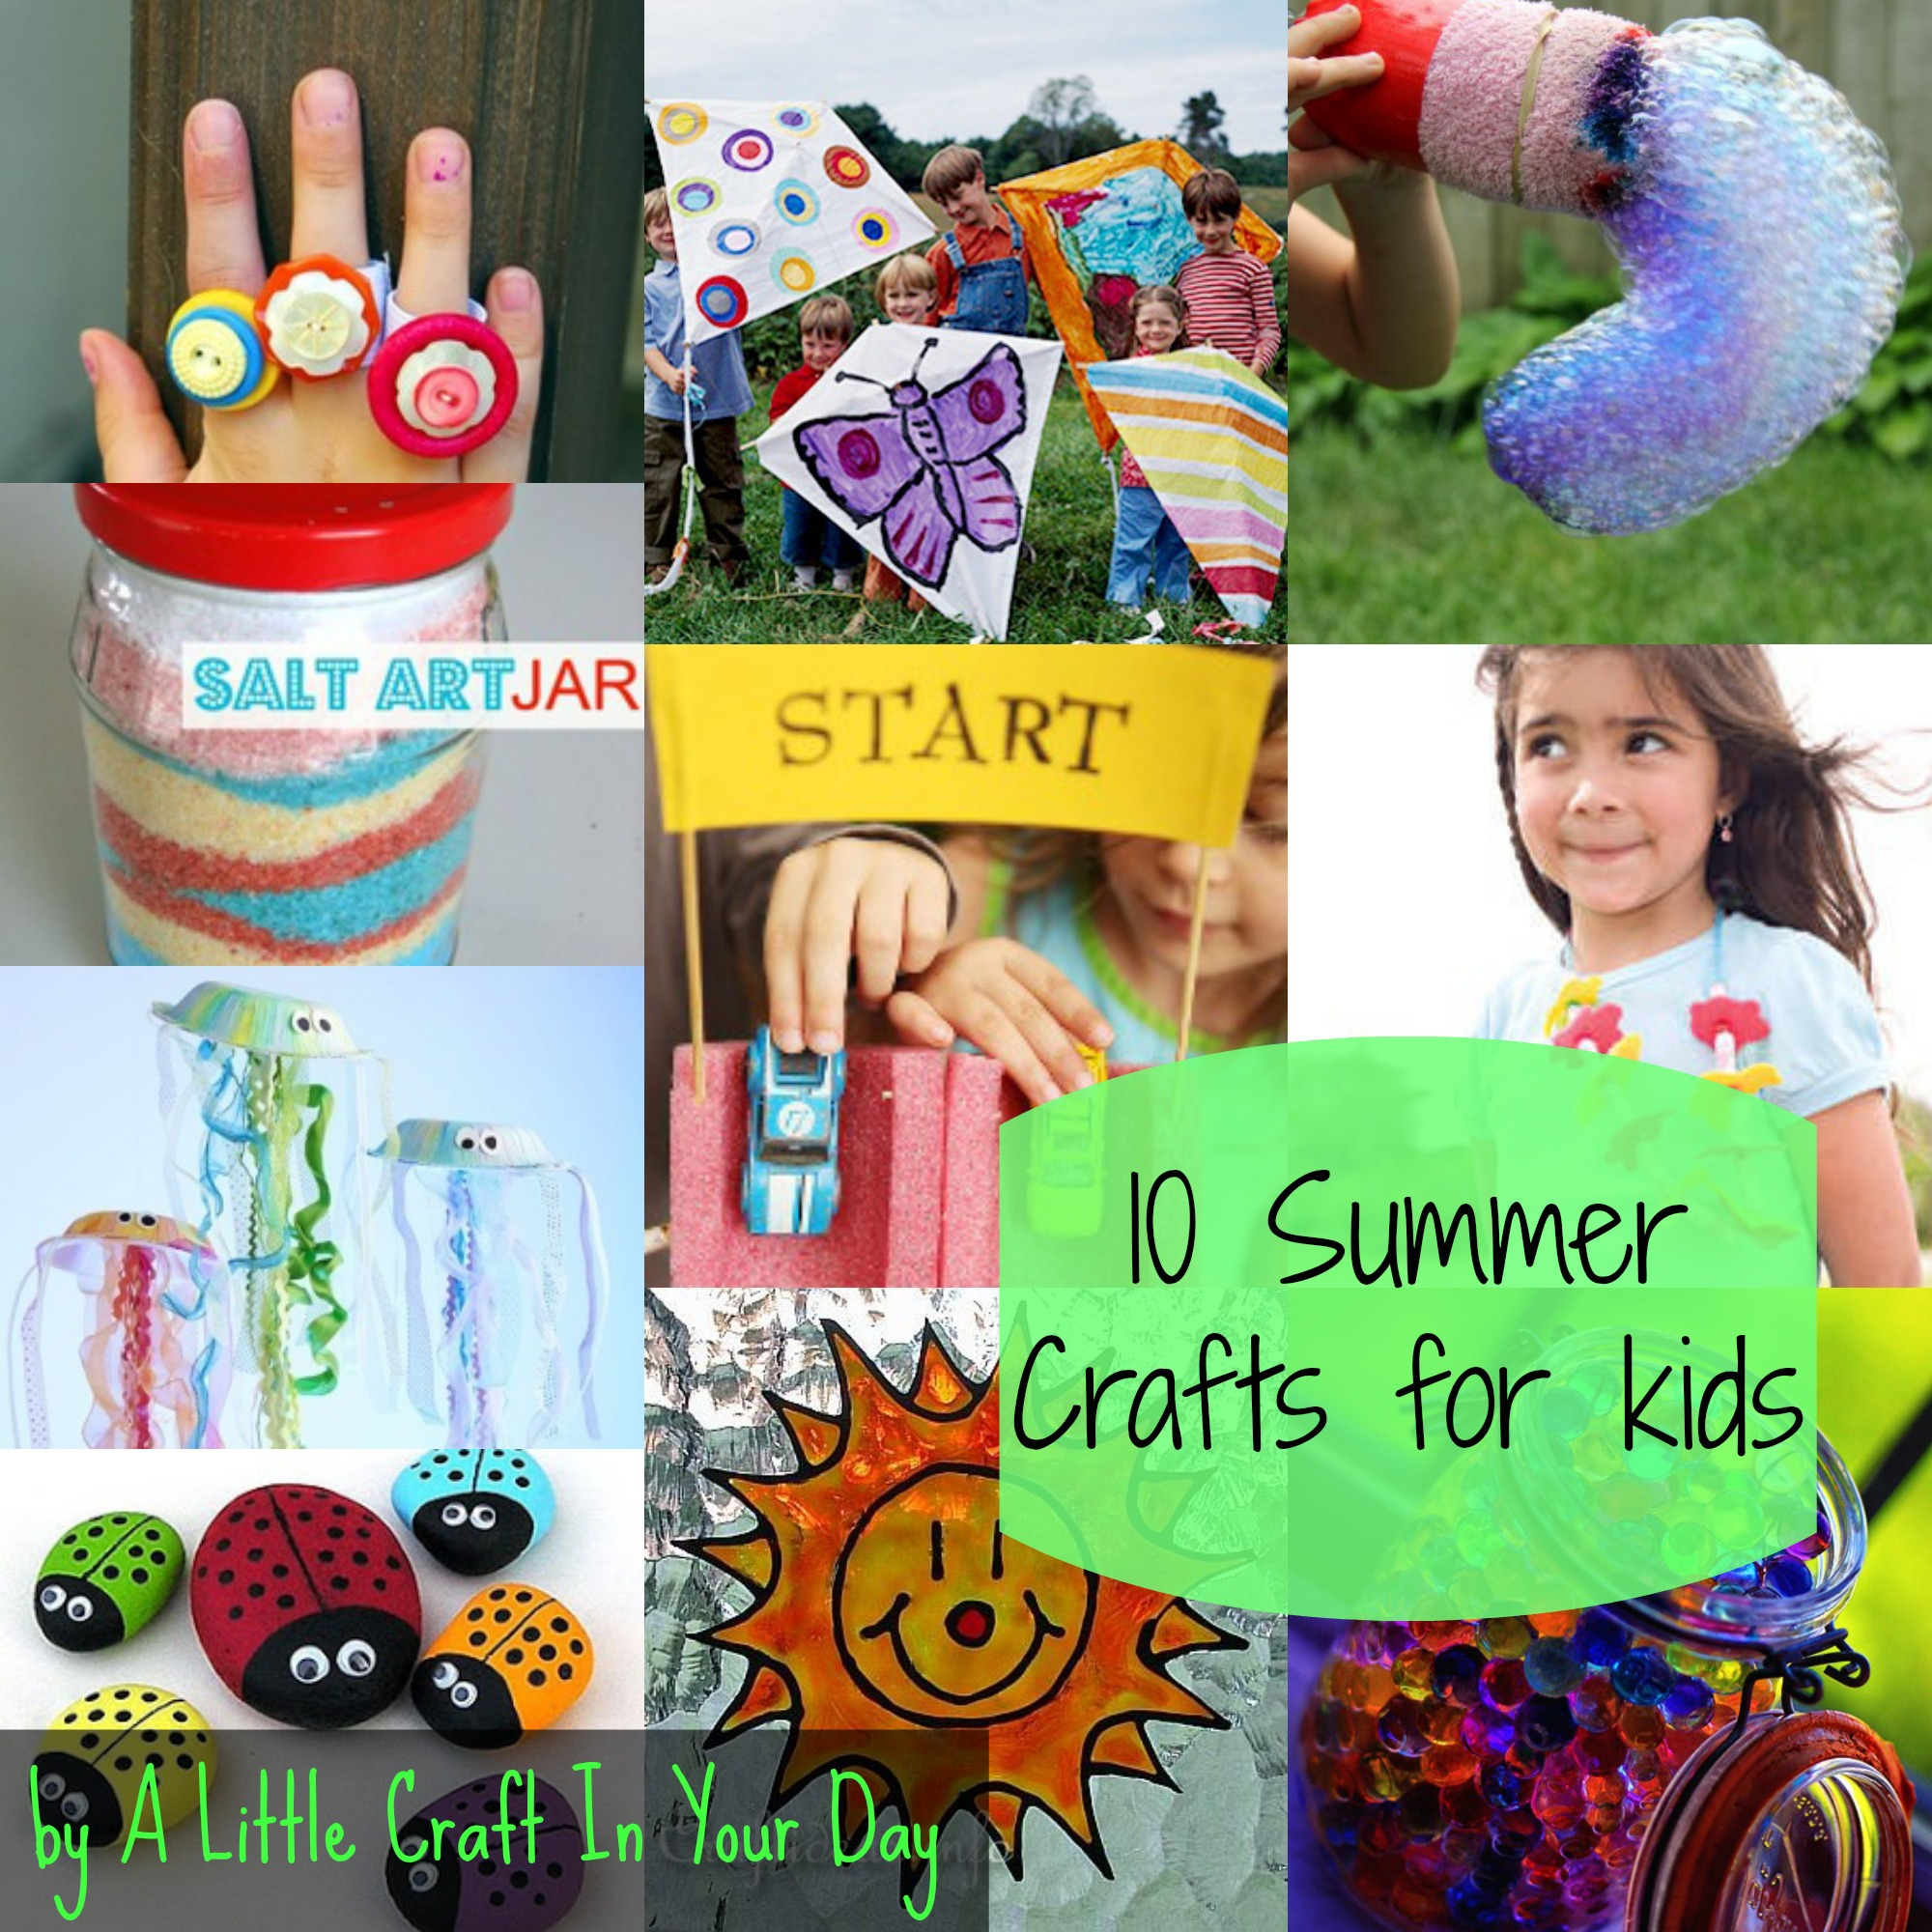 20 Summer Kid Crafts A Little Craft In Your Day